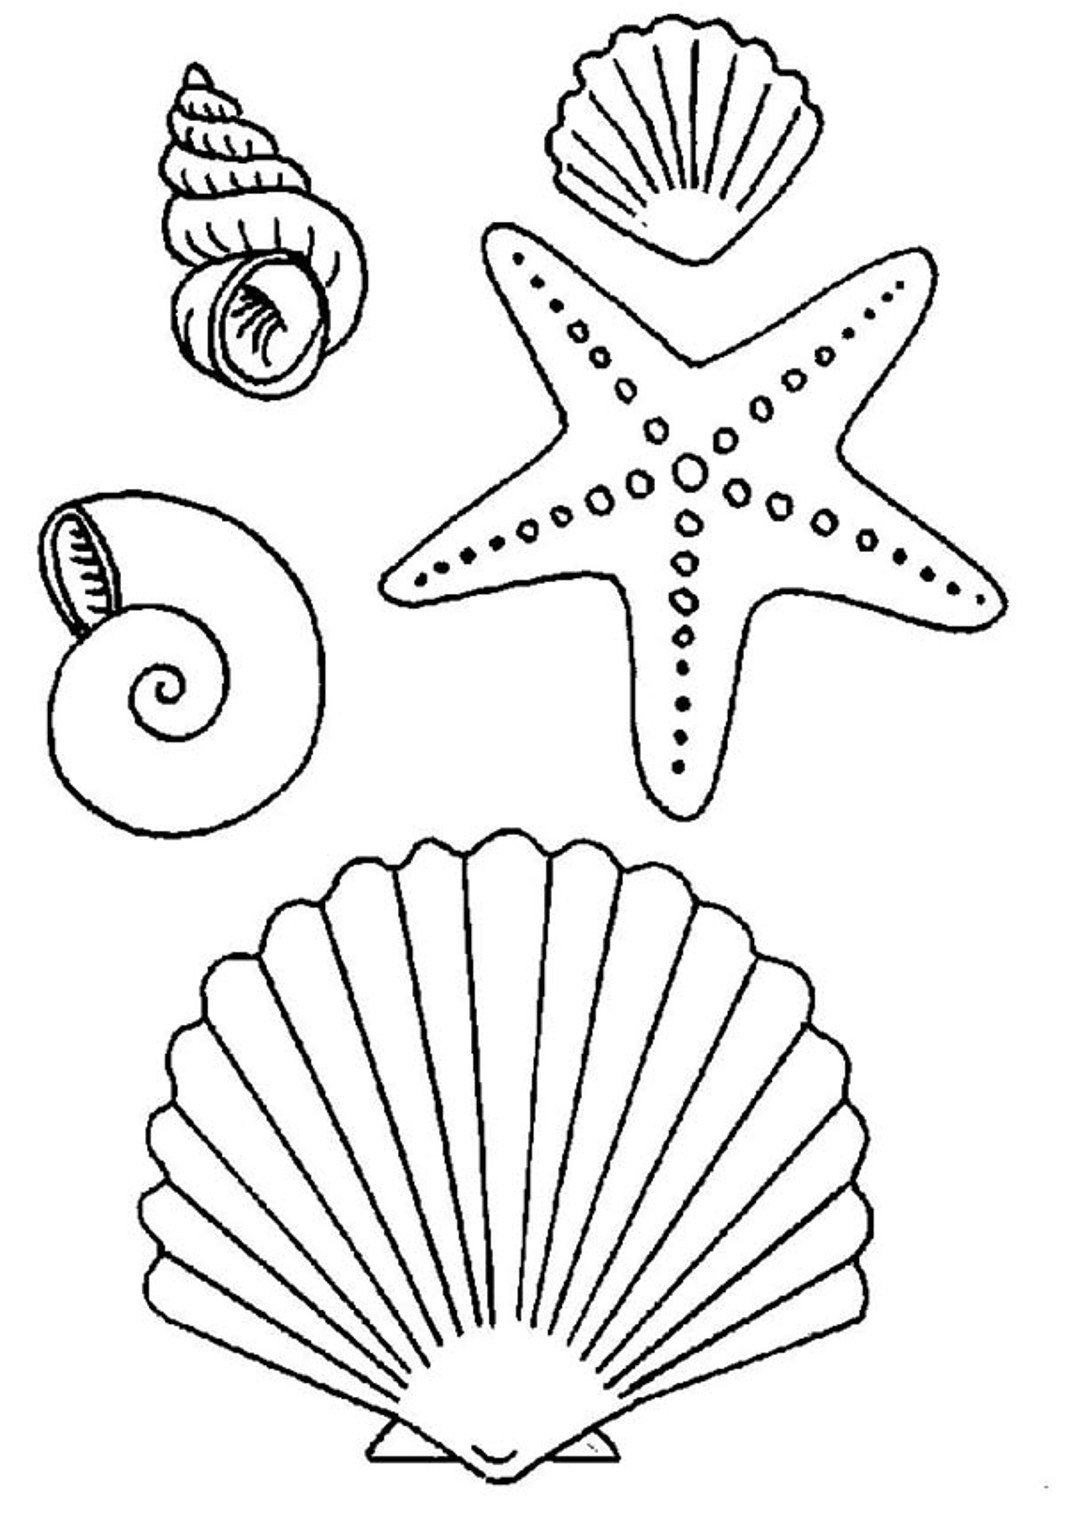 Simple Shell Drawing At Getdrawings Com Free For Personal Use